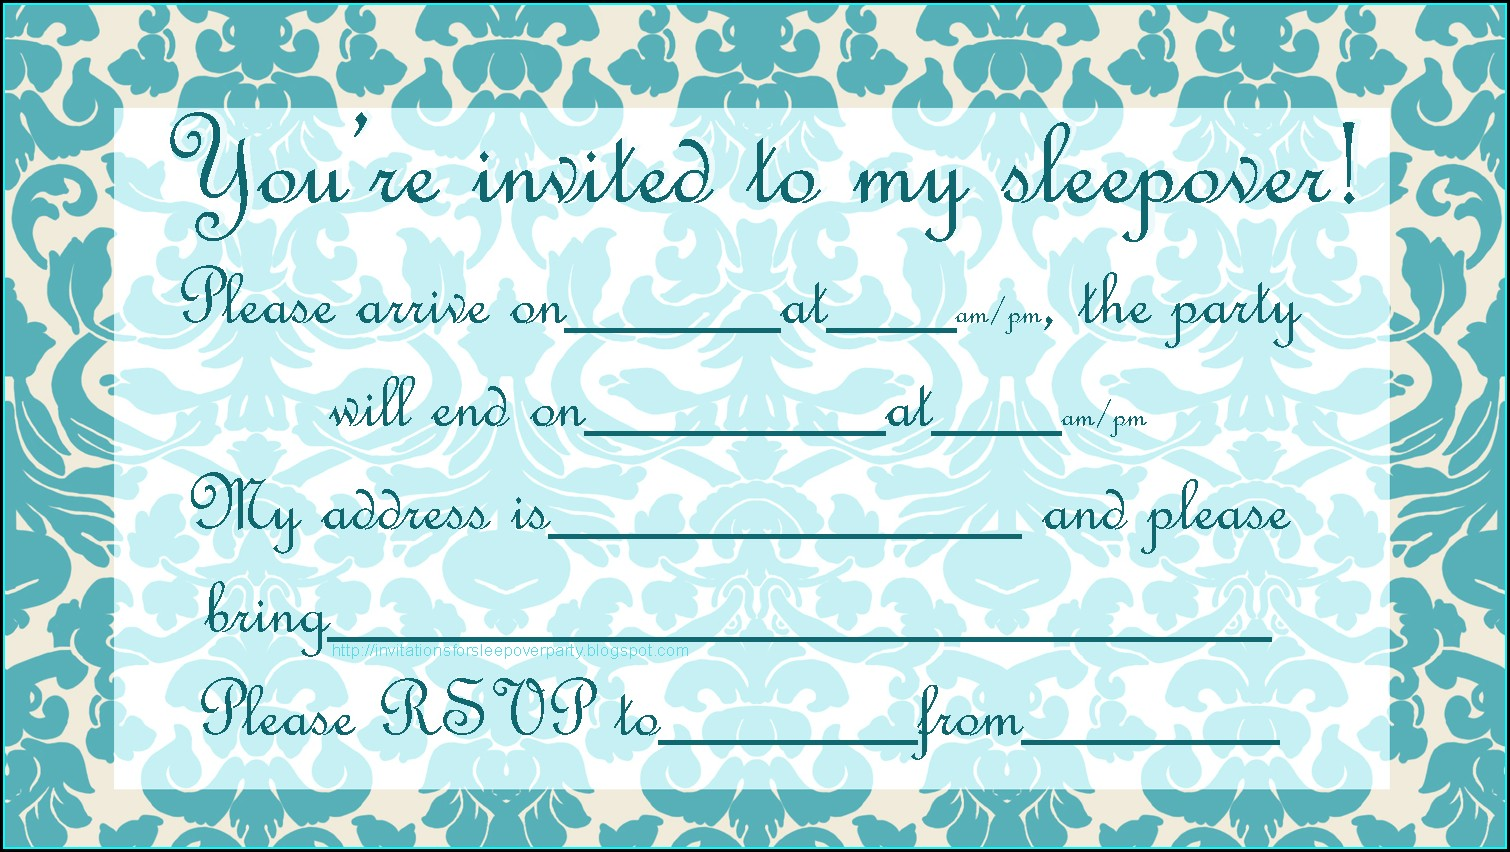 Sleepover Invitations To Print